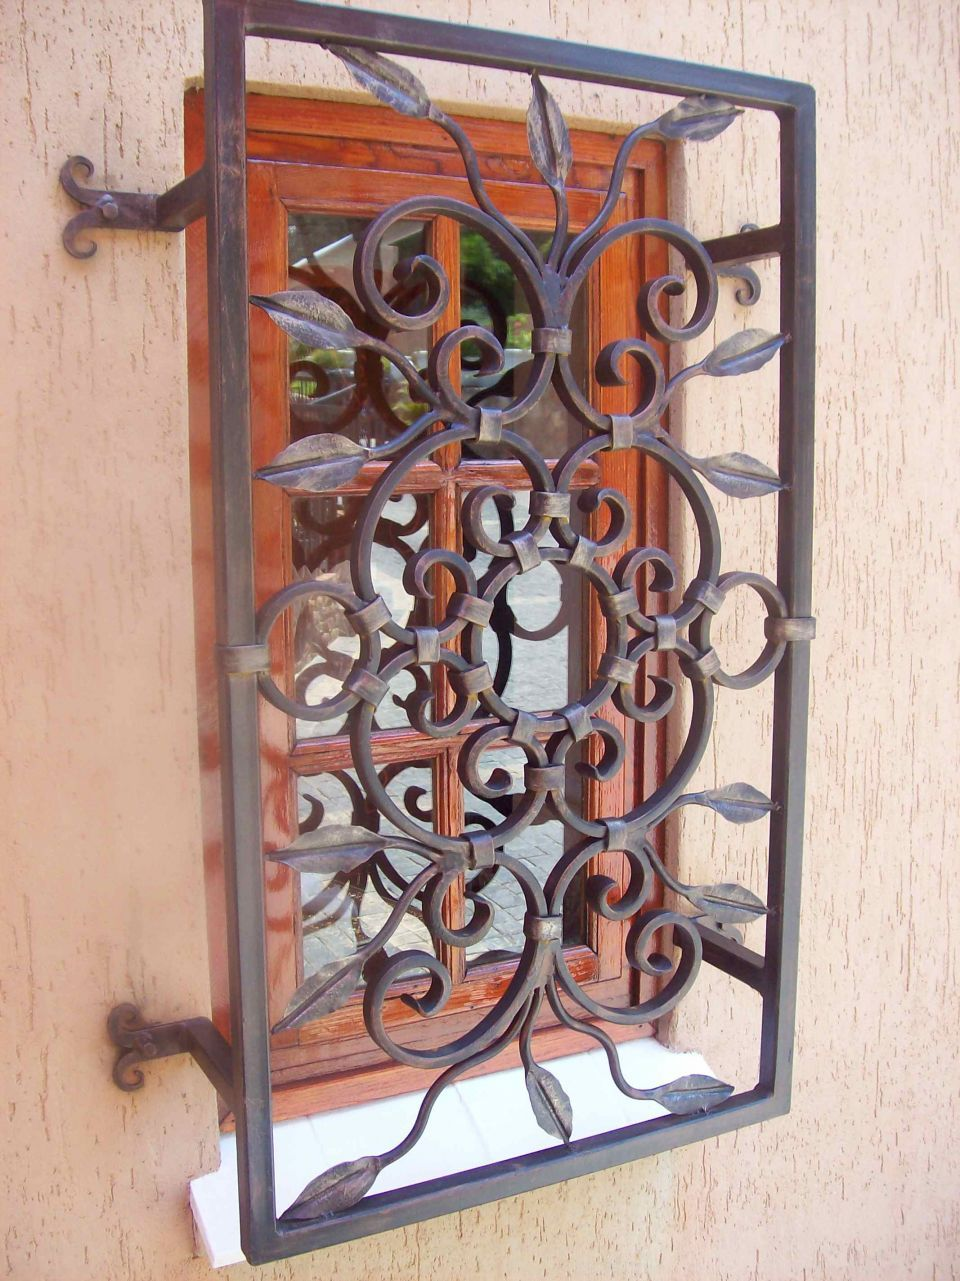 Decorative Security Grilles For Windows Burglar Bars That Dont Make Me Feel Trapped Confined Or